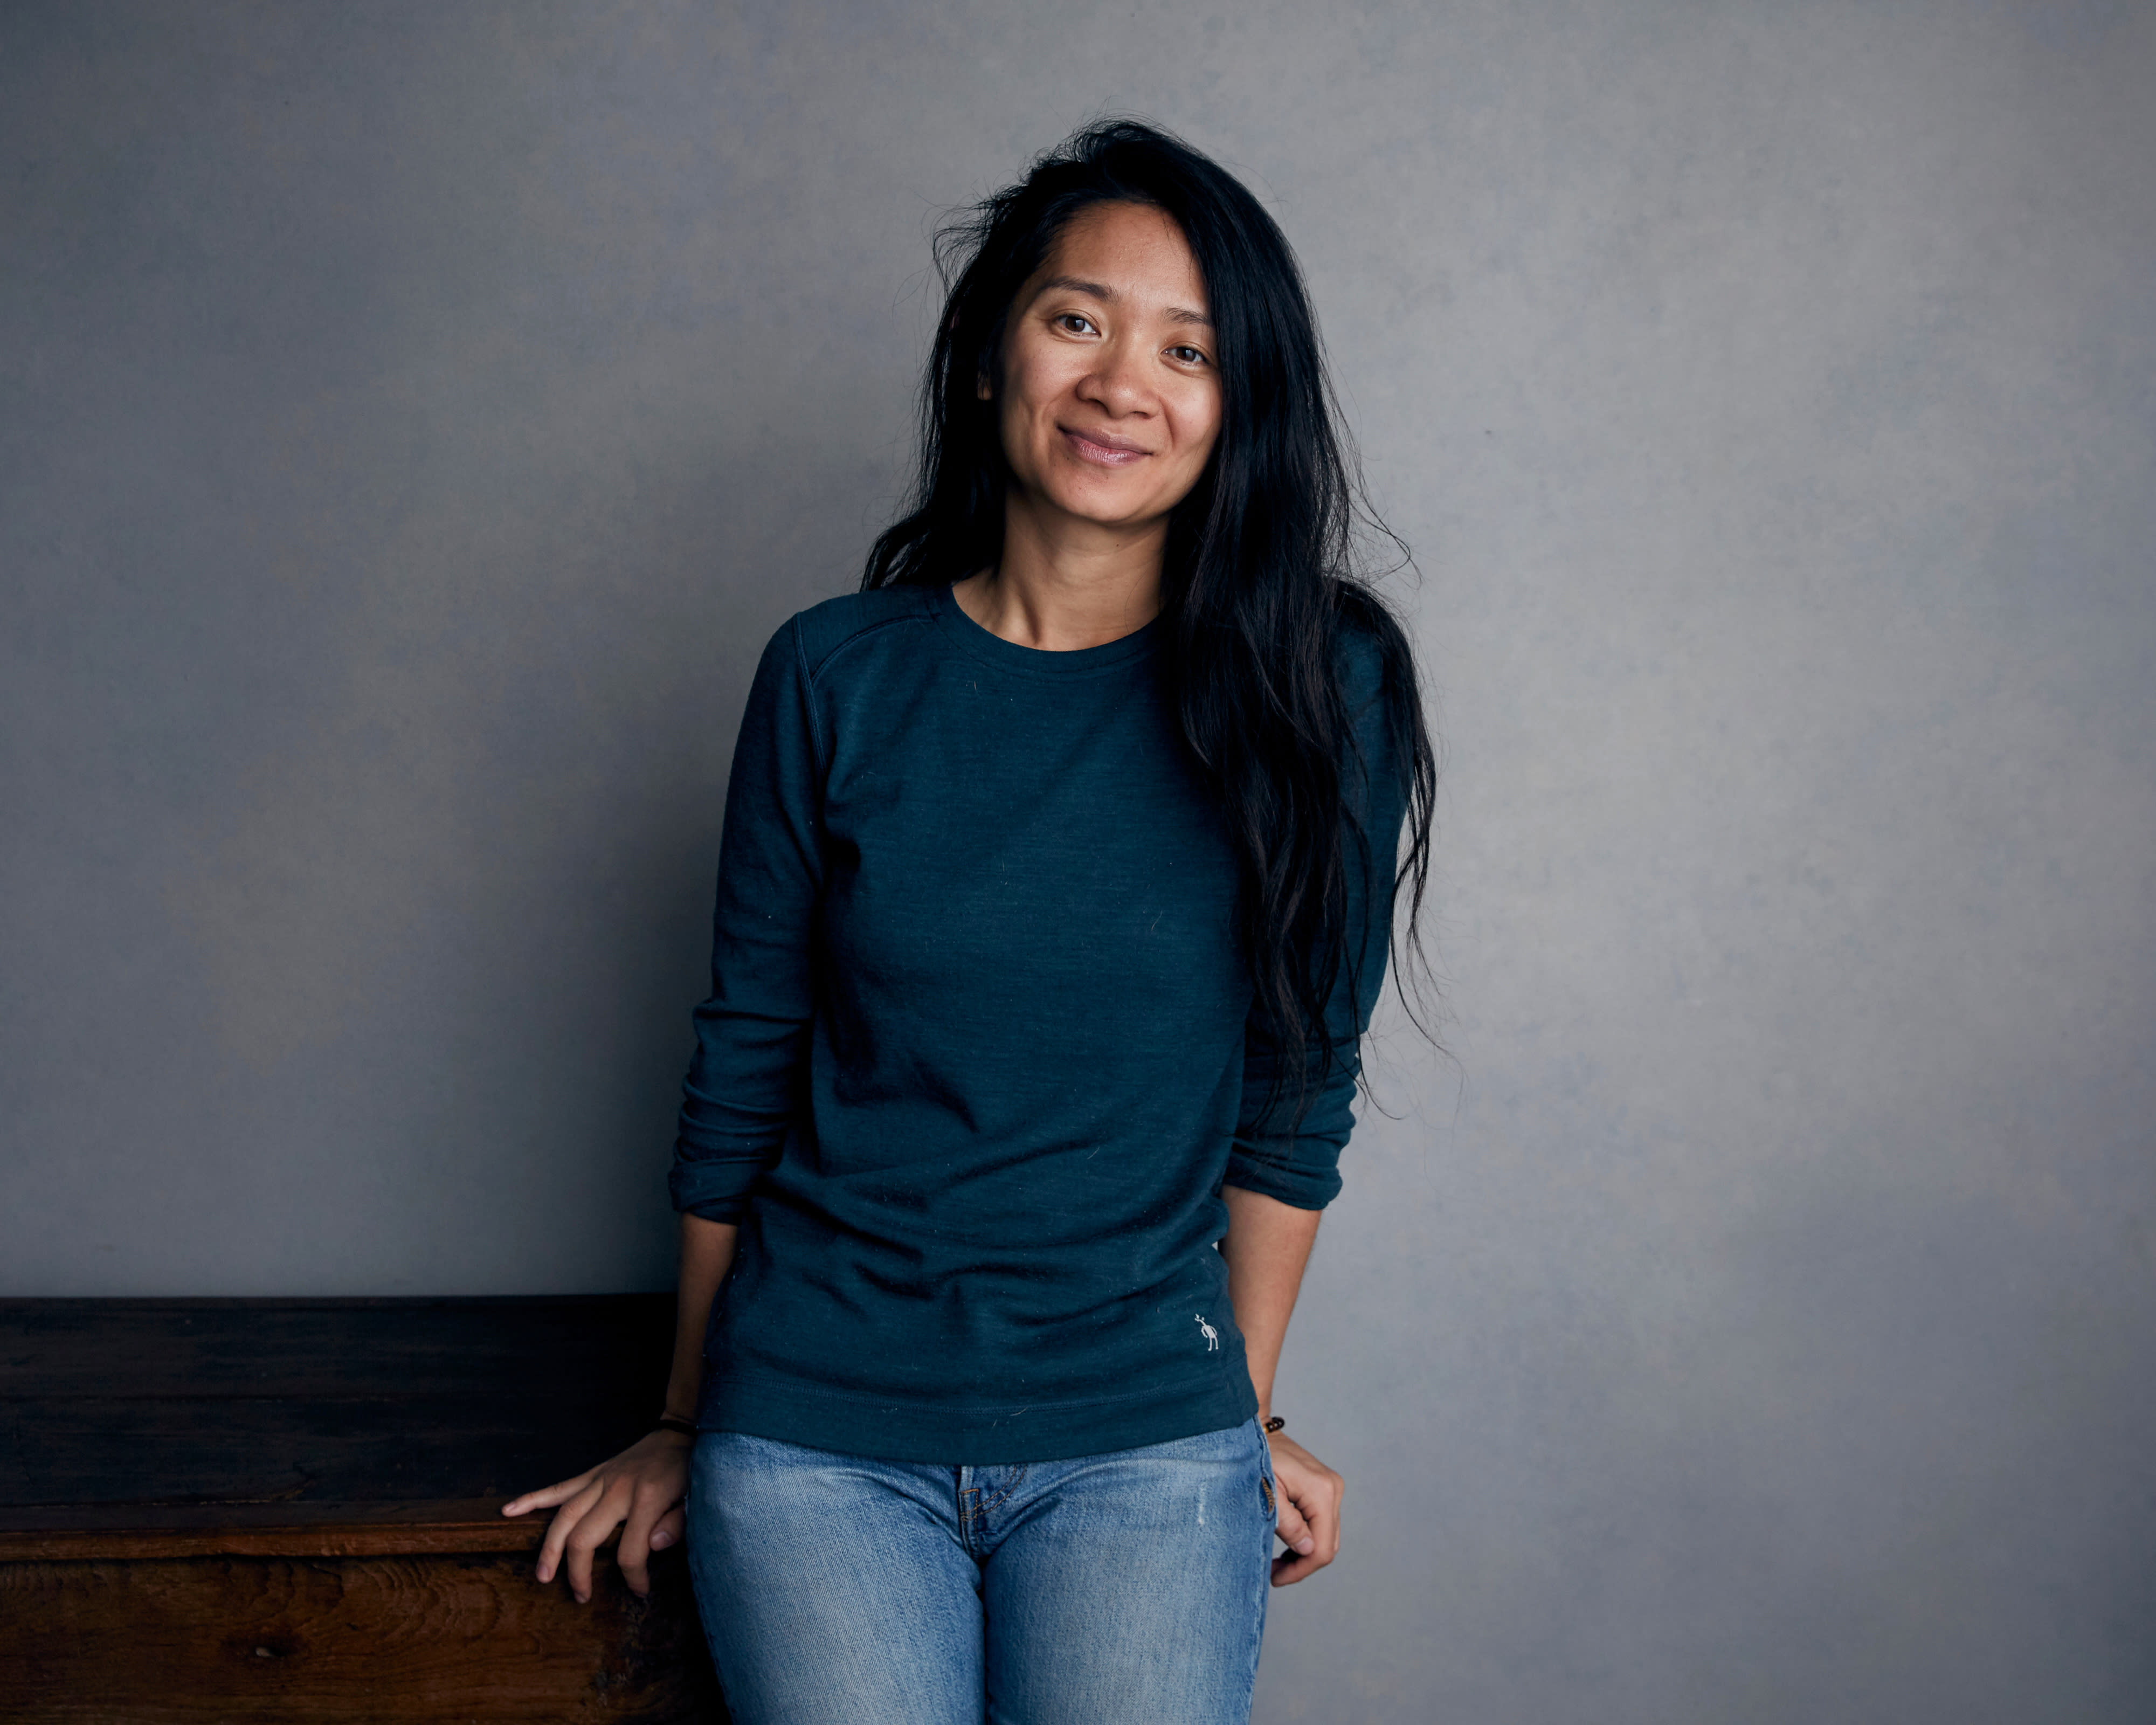 """FILE - Writer-director Chloe Zhao poses for a portrait during the Sundance Film Festival in Park City, Utah on Jan. 22, 2018. Zhao's latest film, """"Nomadland,"""" stars Frances McDormand as a woman living rootlessly across the American West after the Great Recession. (Photo by Taylor Jewell/Invision/AP, File)"""